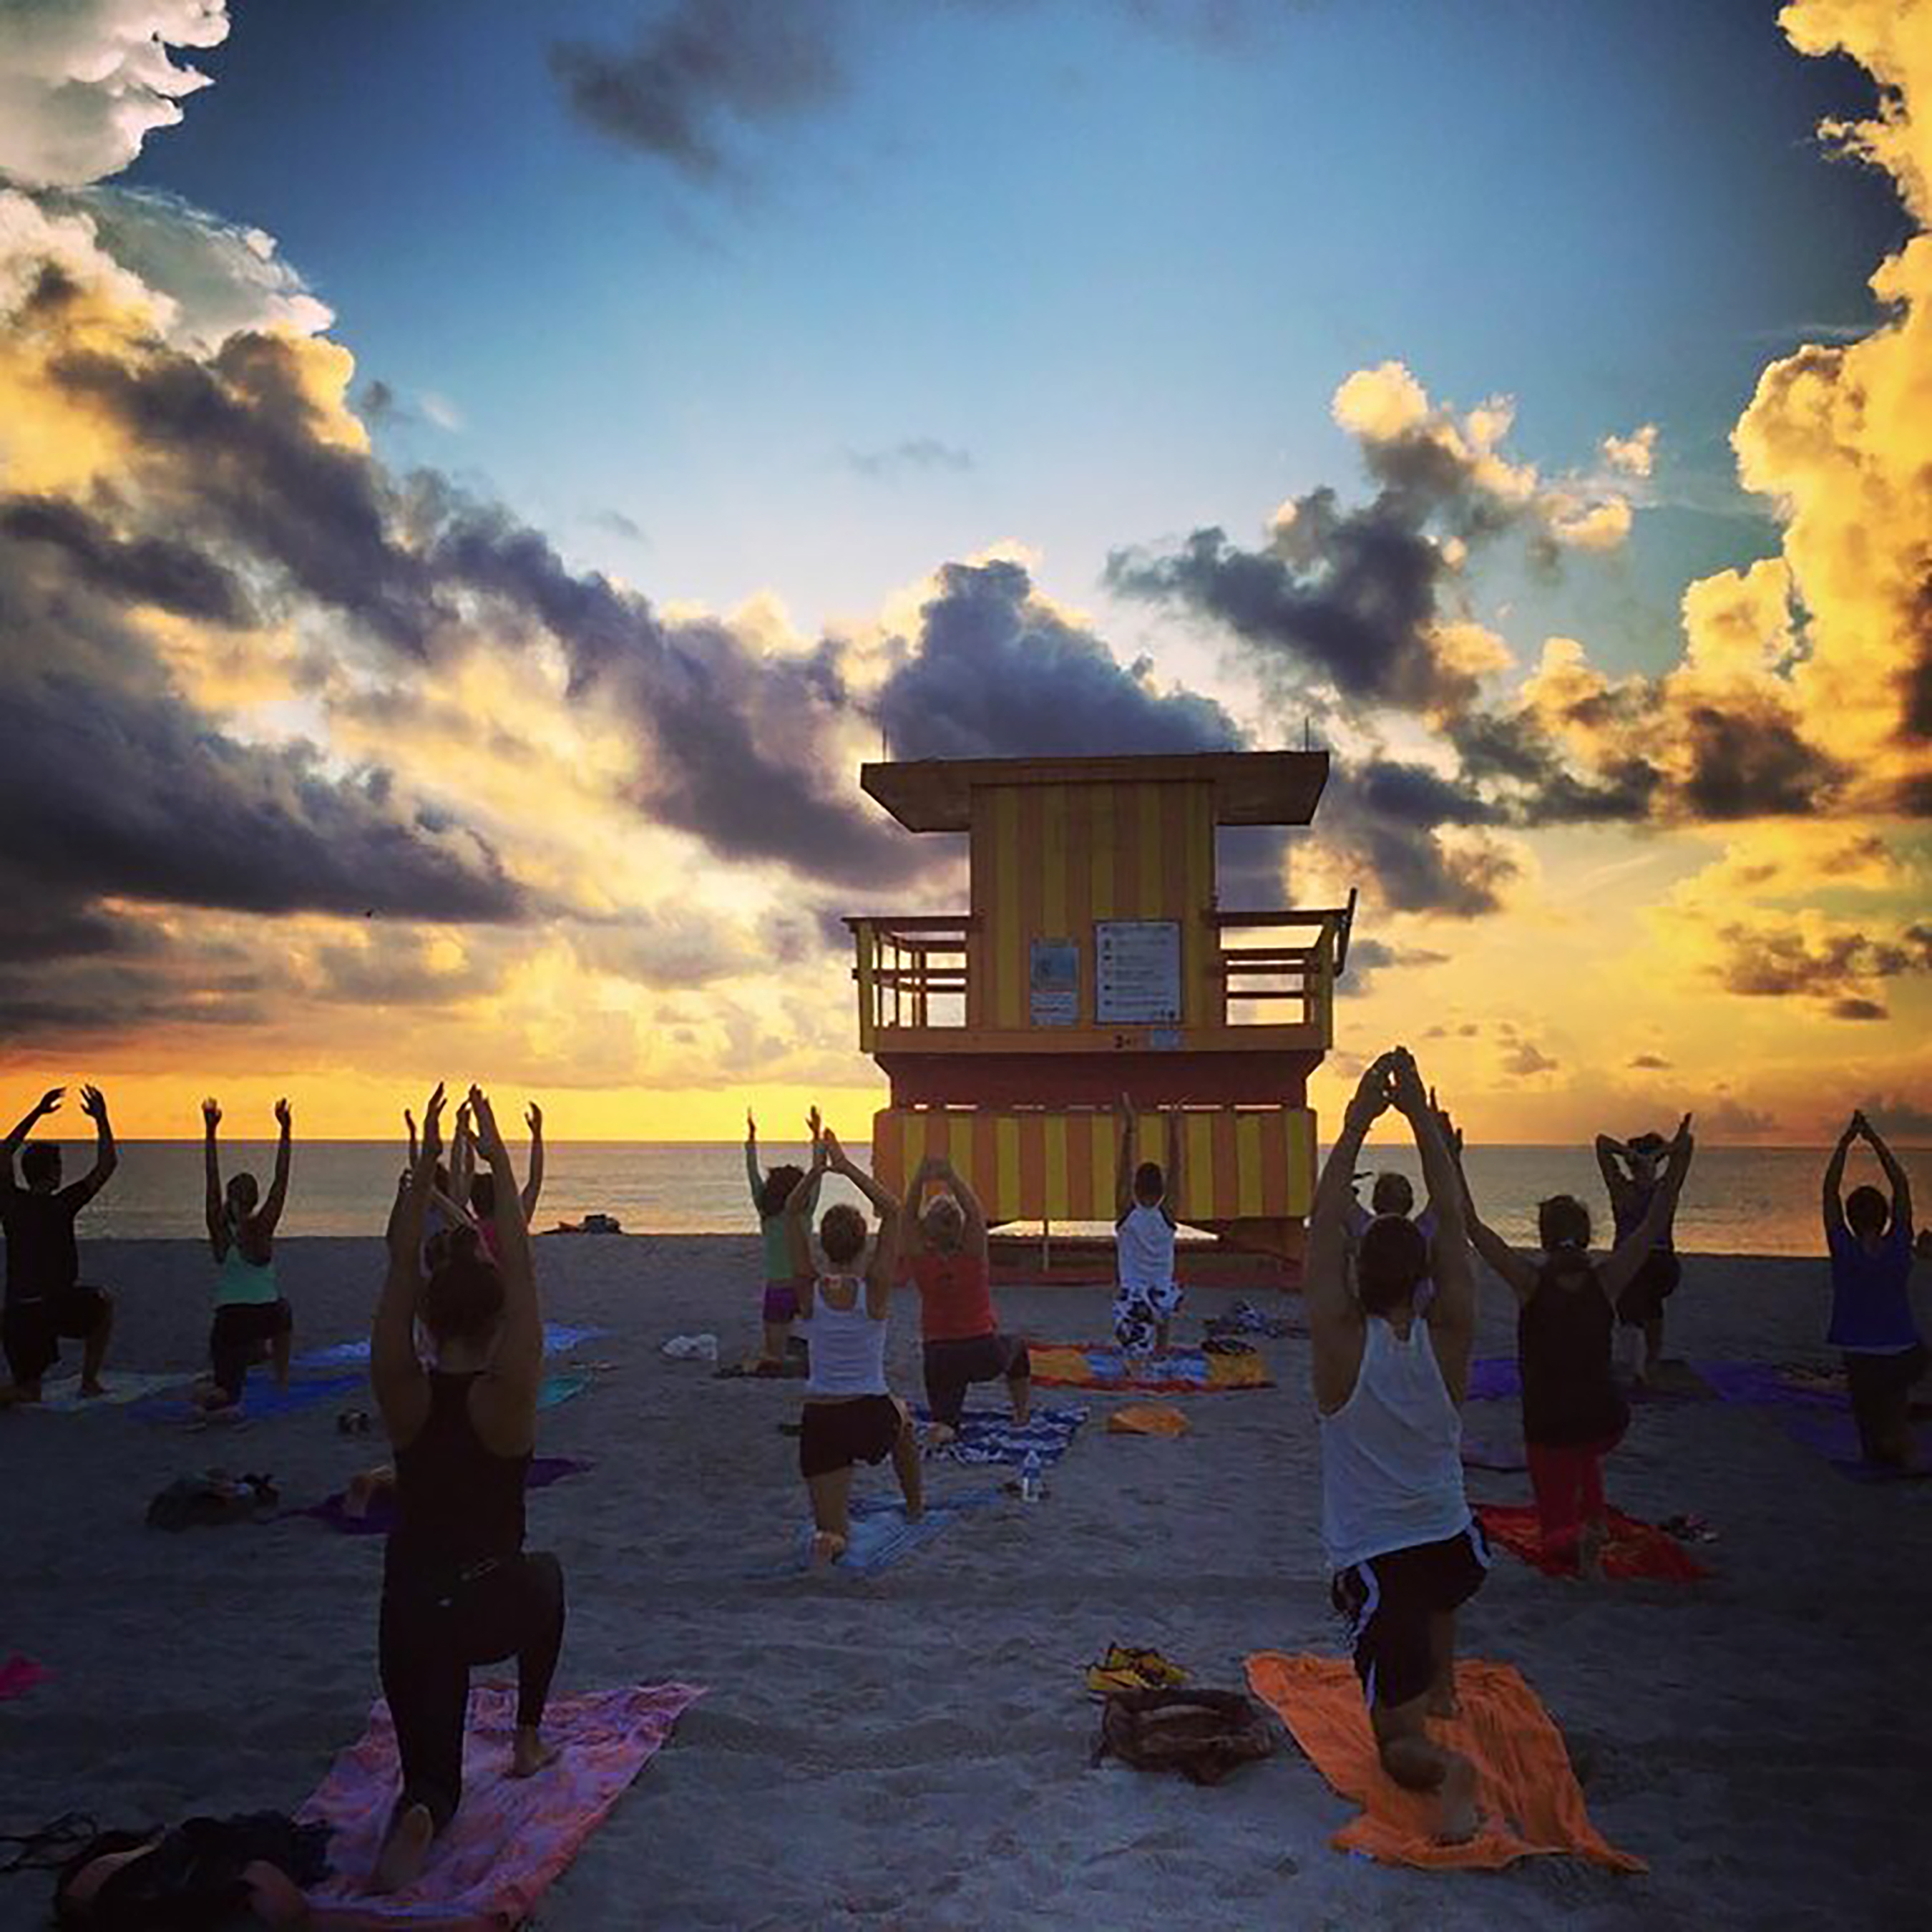 Discover a new morning routine that can help strengthen, detox, and exhilarate the body and mind at 3rd Street Beach Yoga